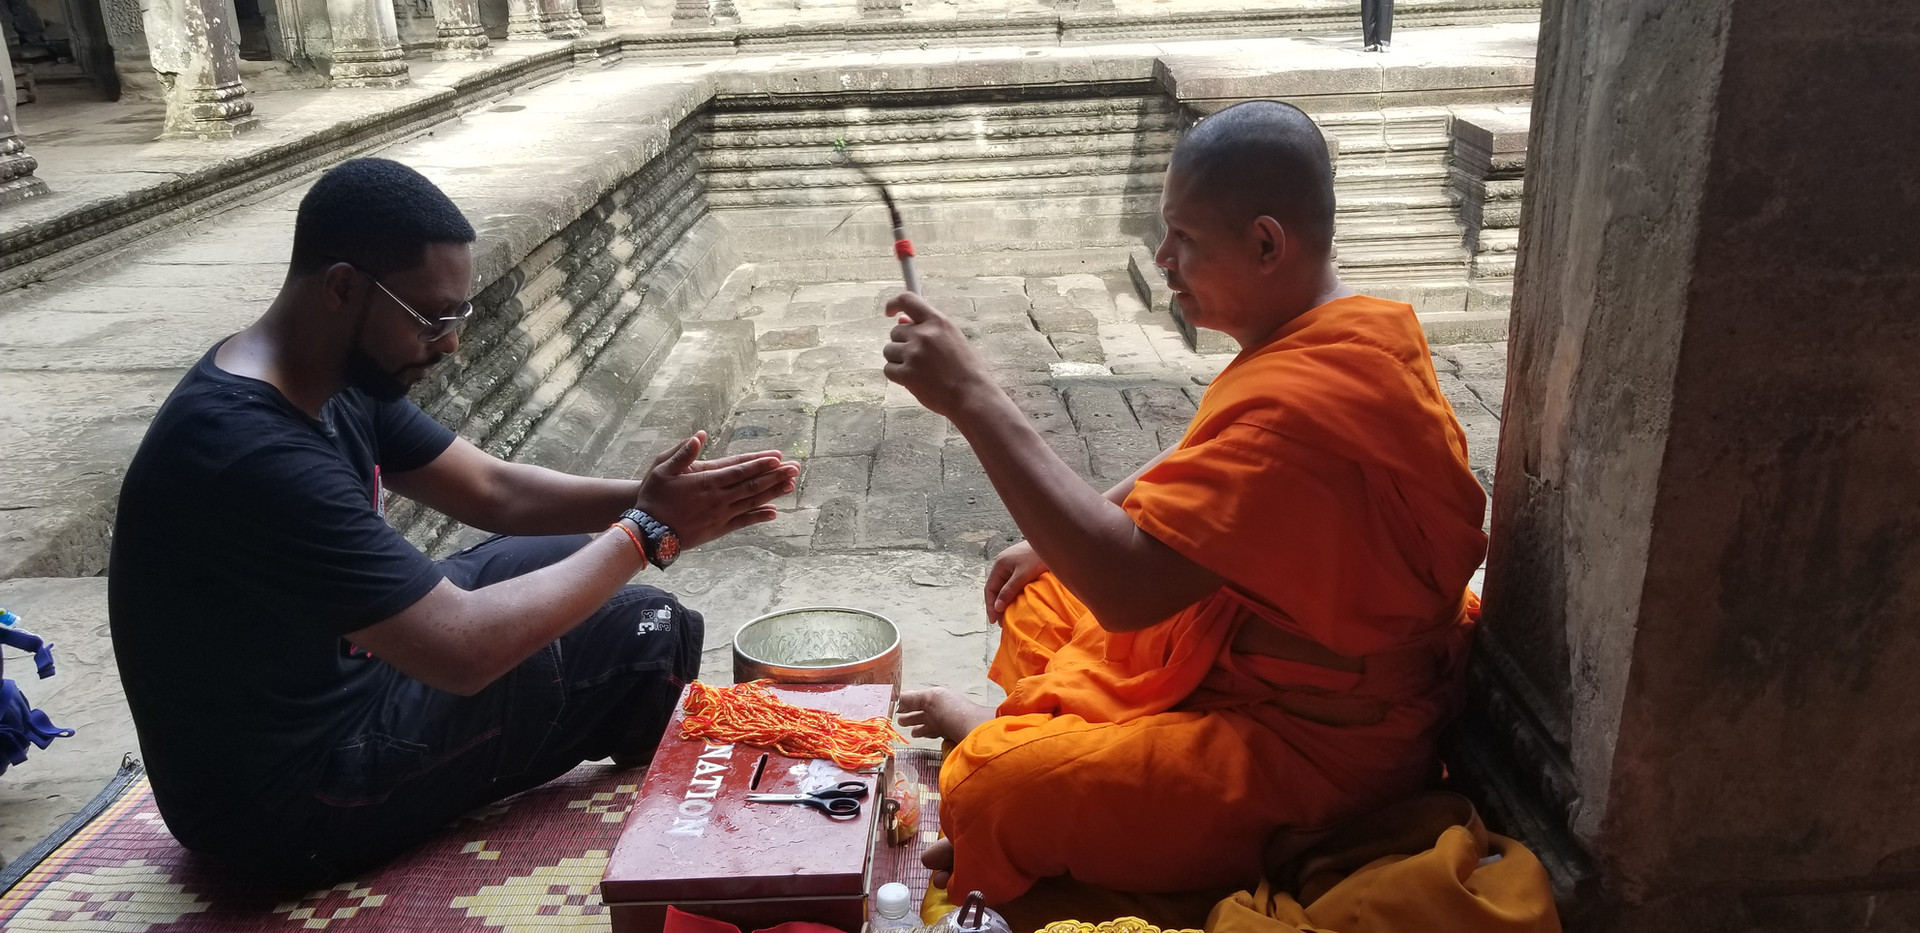 Blessed by Monk in Cambodia